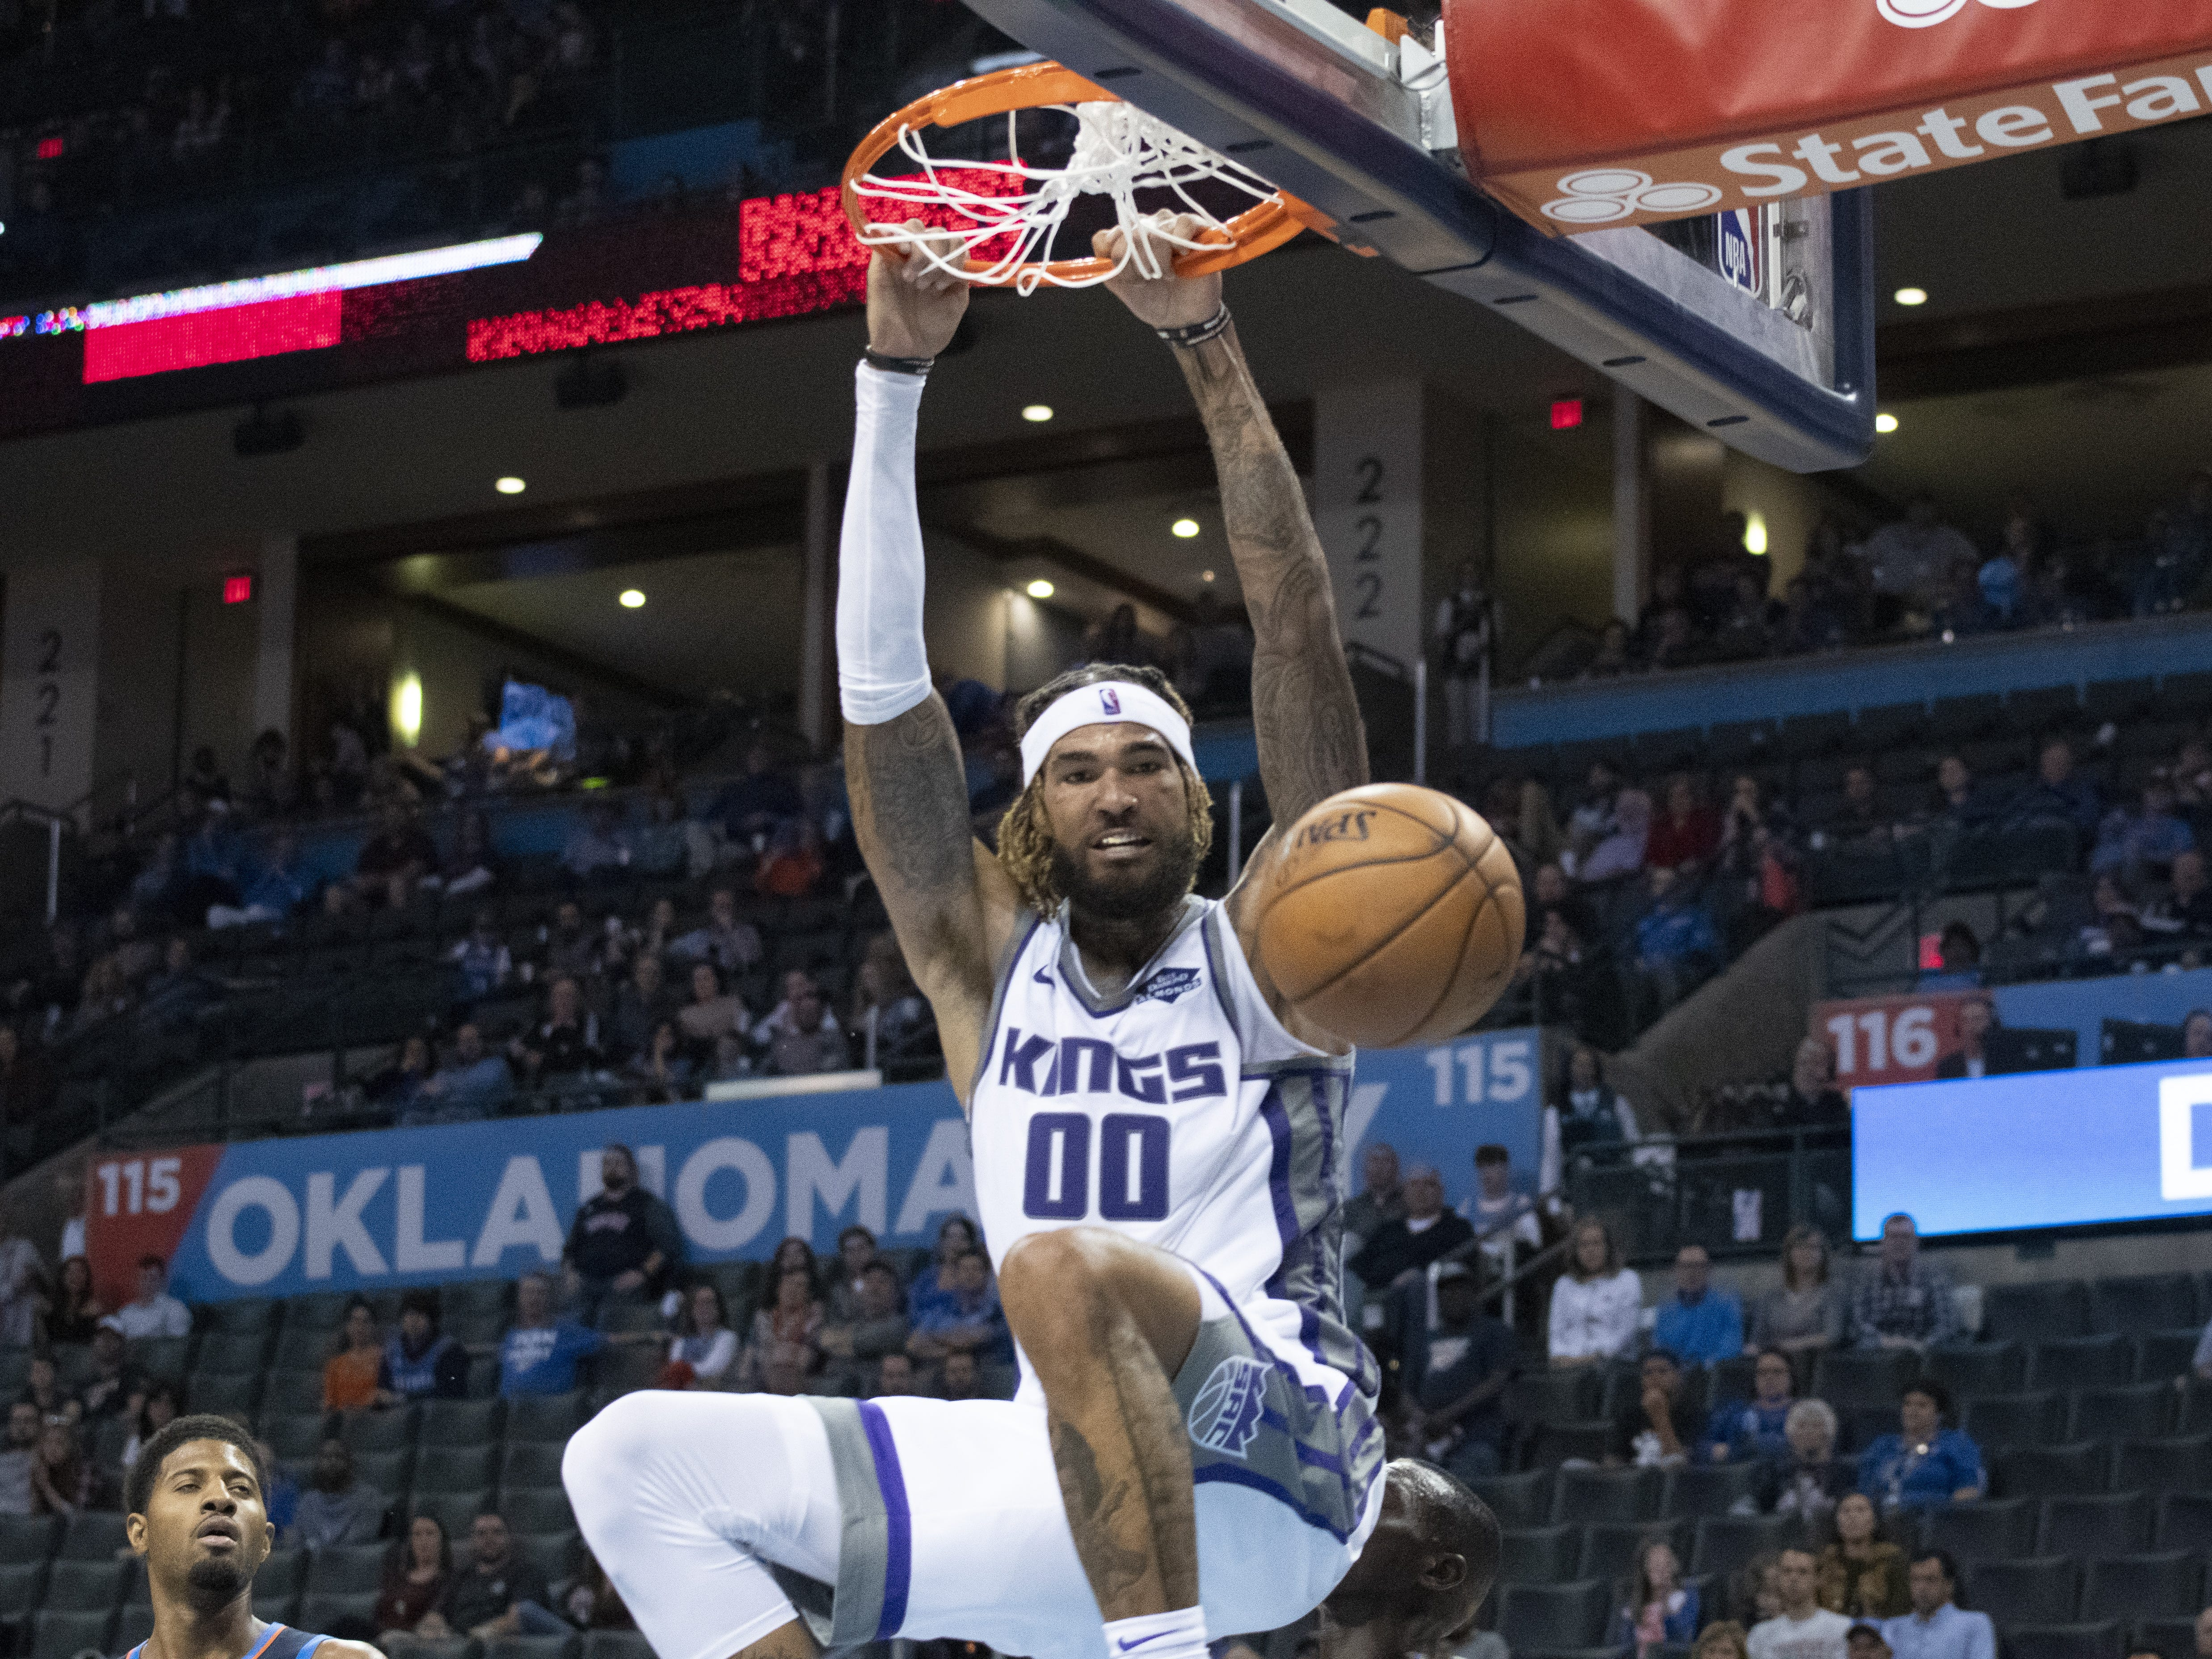 Oct. 21: The Kings' Willie Cauley-Stein grabs the rim after throwing one down on the Thunder.